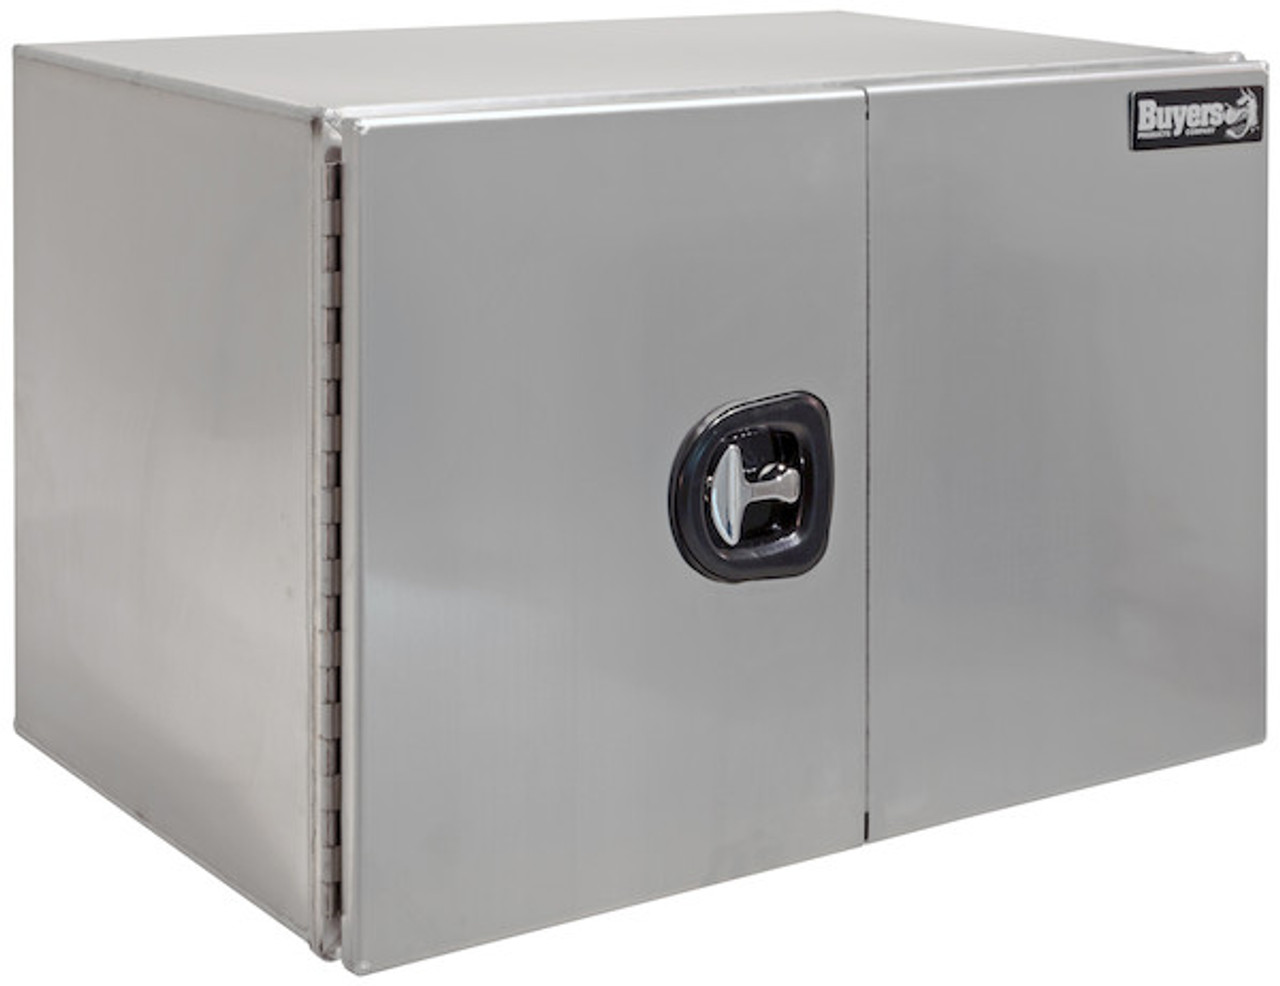 "1705410 BUYERS PRODUCTS XD SMOOTH ALUMINUM UNDERBODY TOOLBOX WITH BARN DOOR 18""HX18""DX48""W"